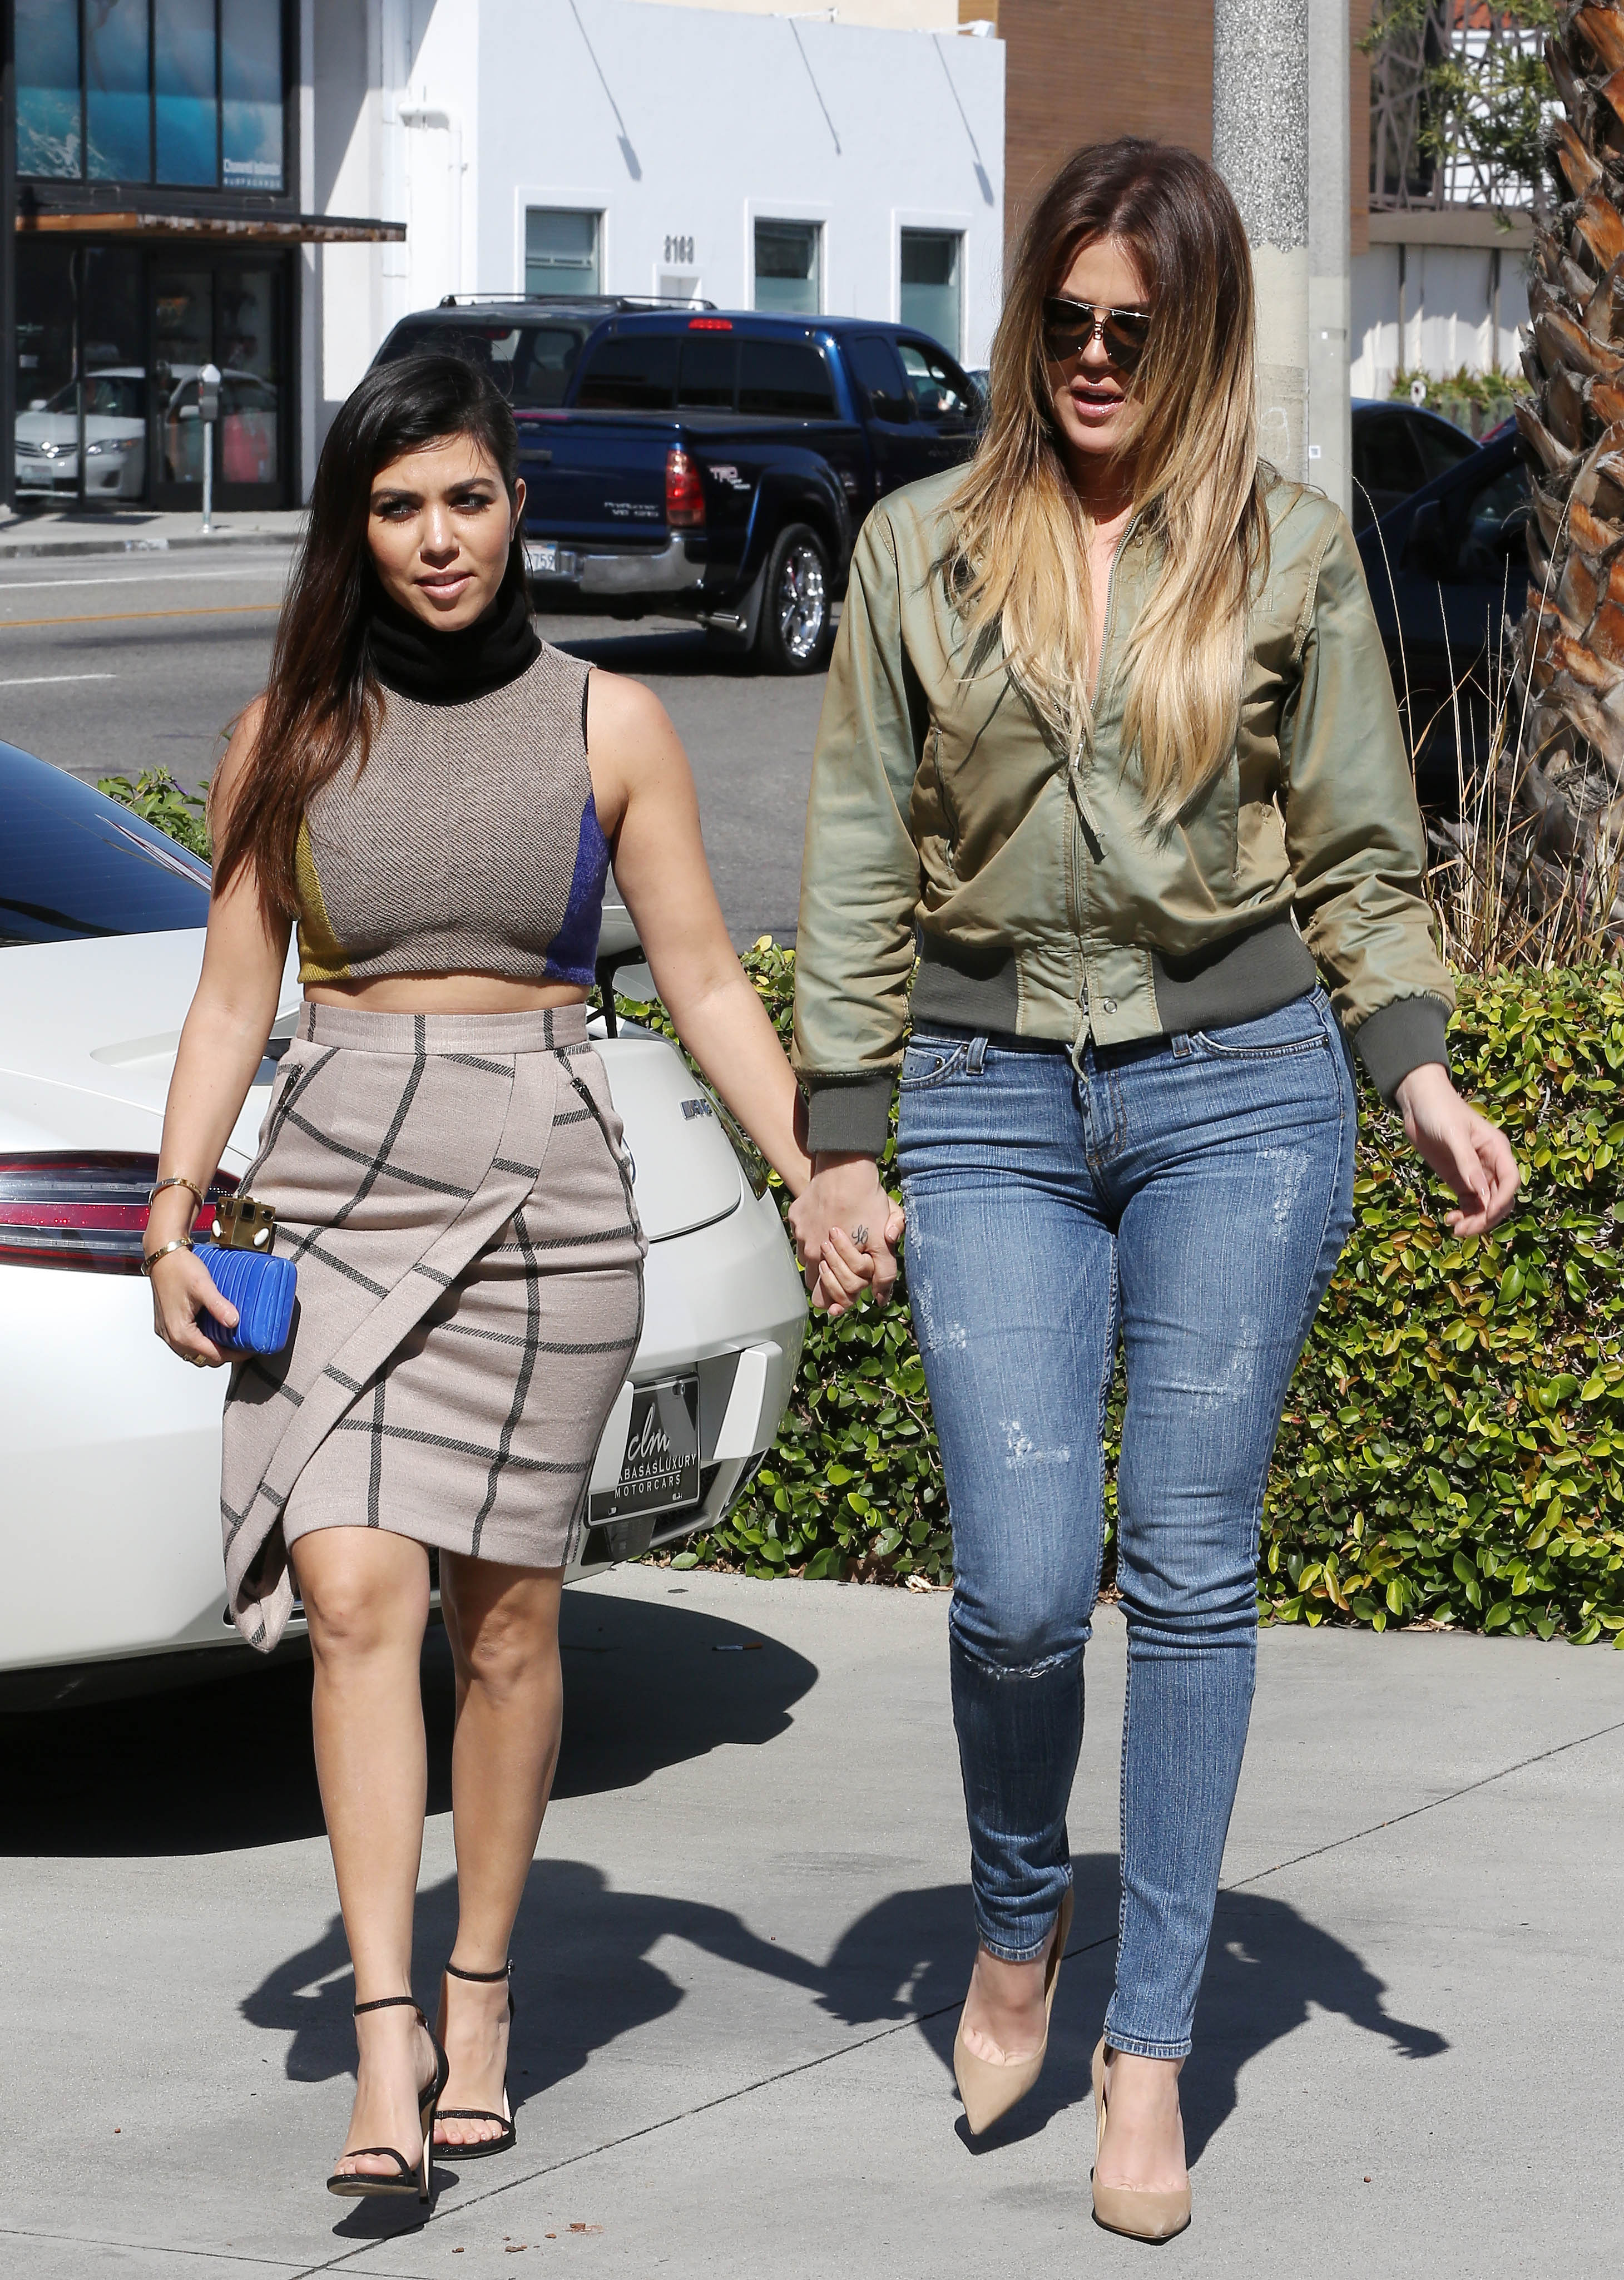 Khloe and Kourtney Kardashian shopping at an Antique store and shopping at the Rug Company